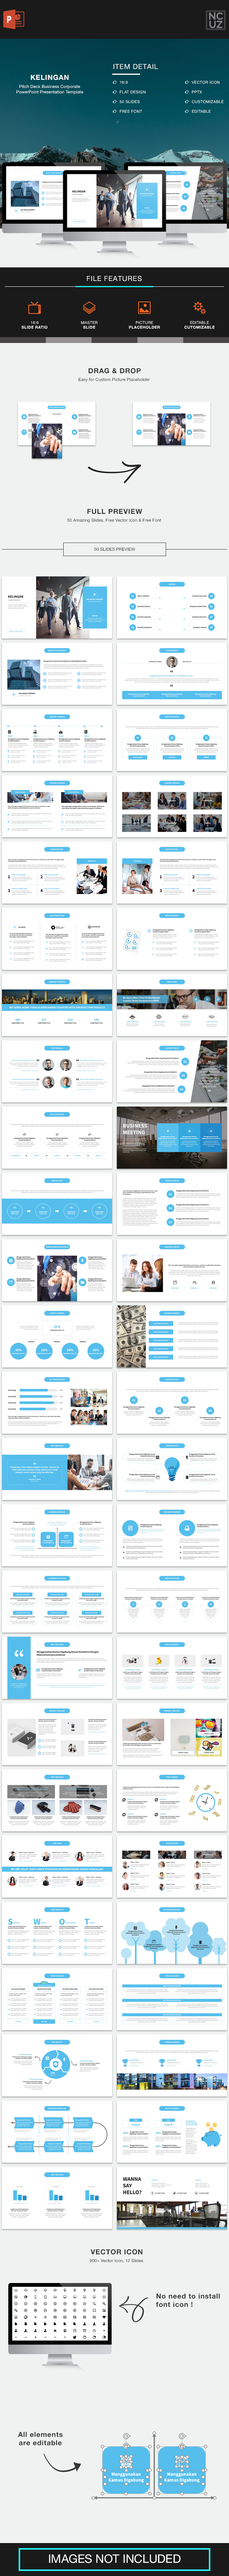 Kelingan Pitch Deck PowerPoint Template - Pitch Deck PowerPoint Templates